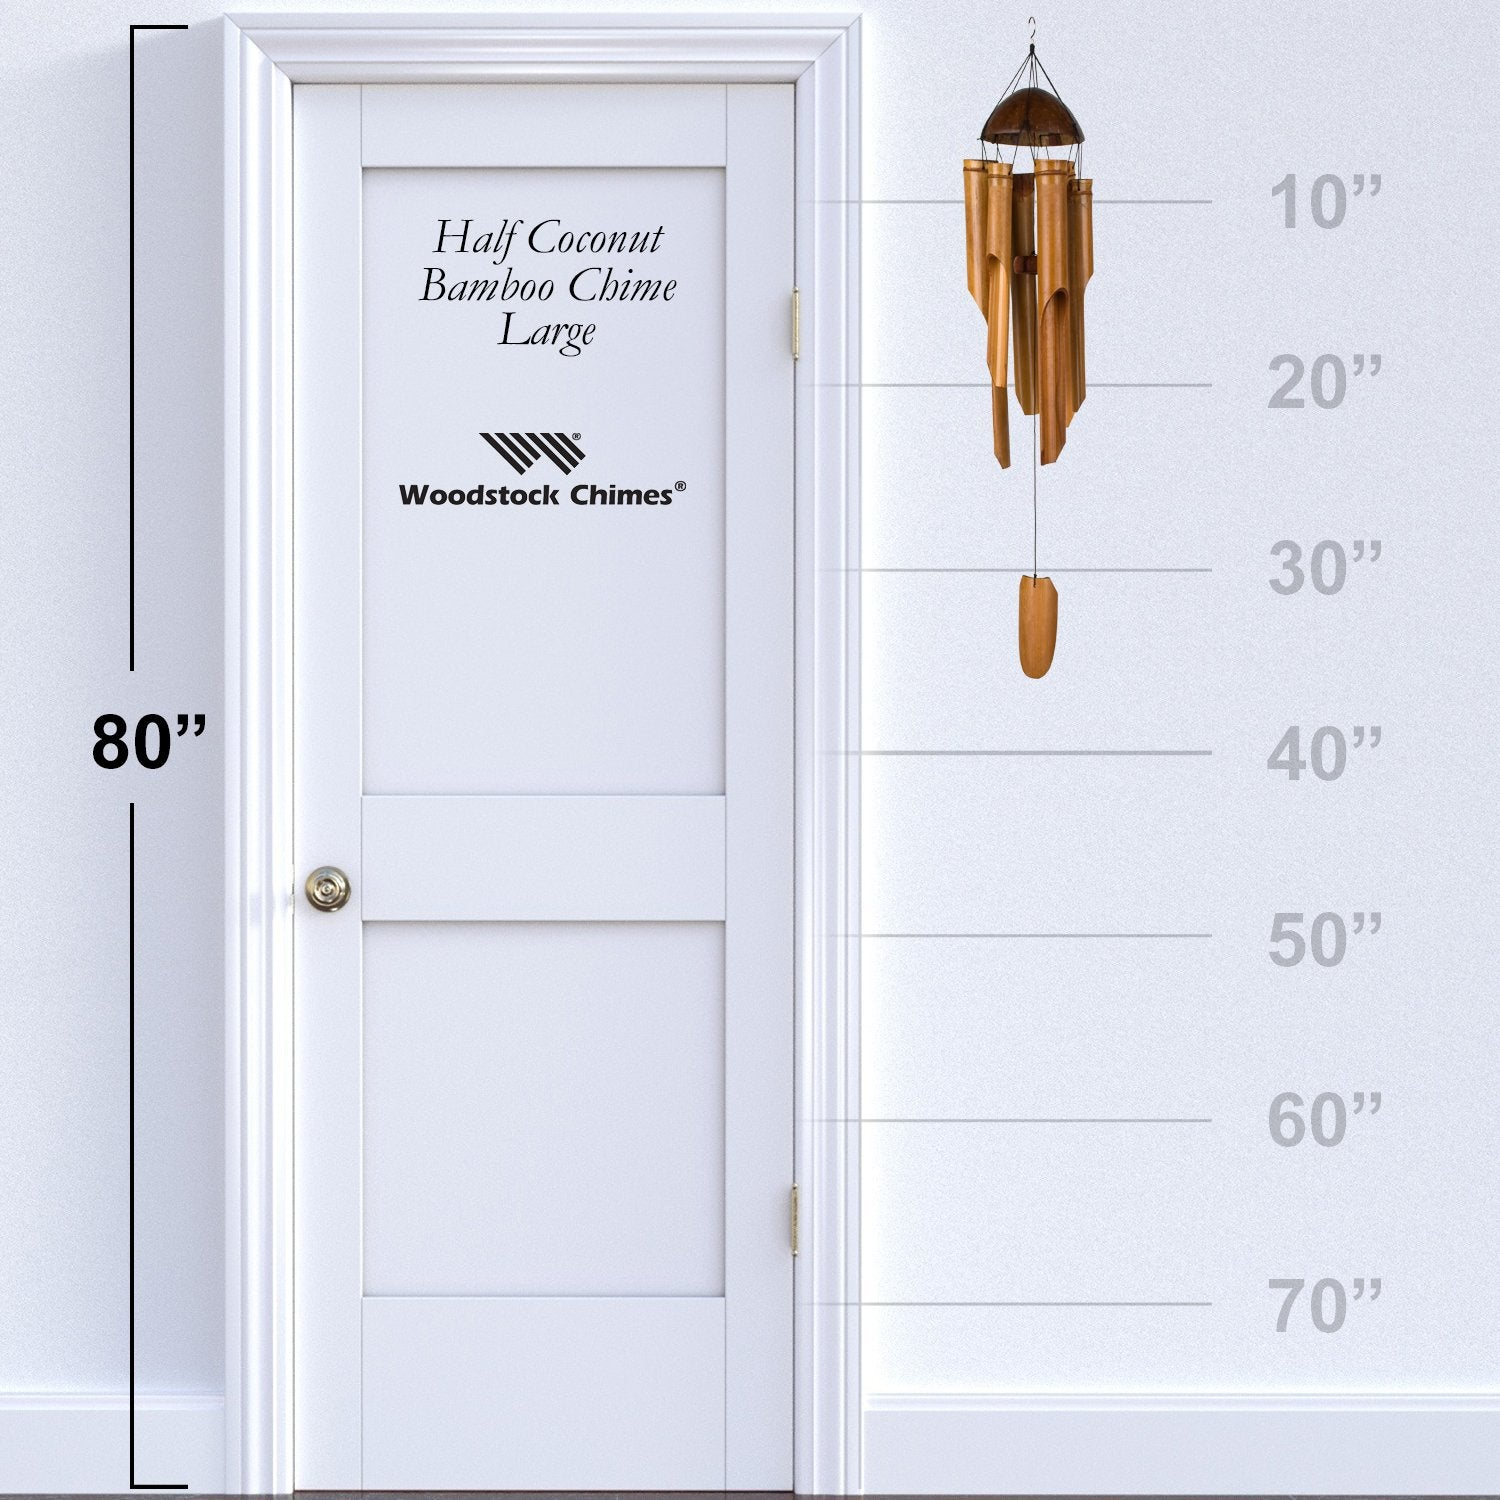 Half Coconut Bamboo Chime - Large proportion image